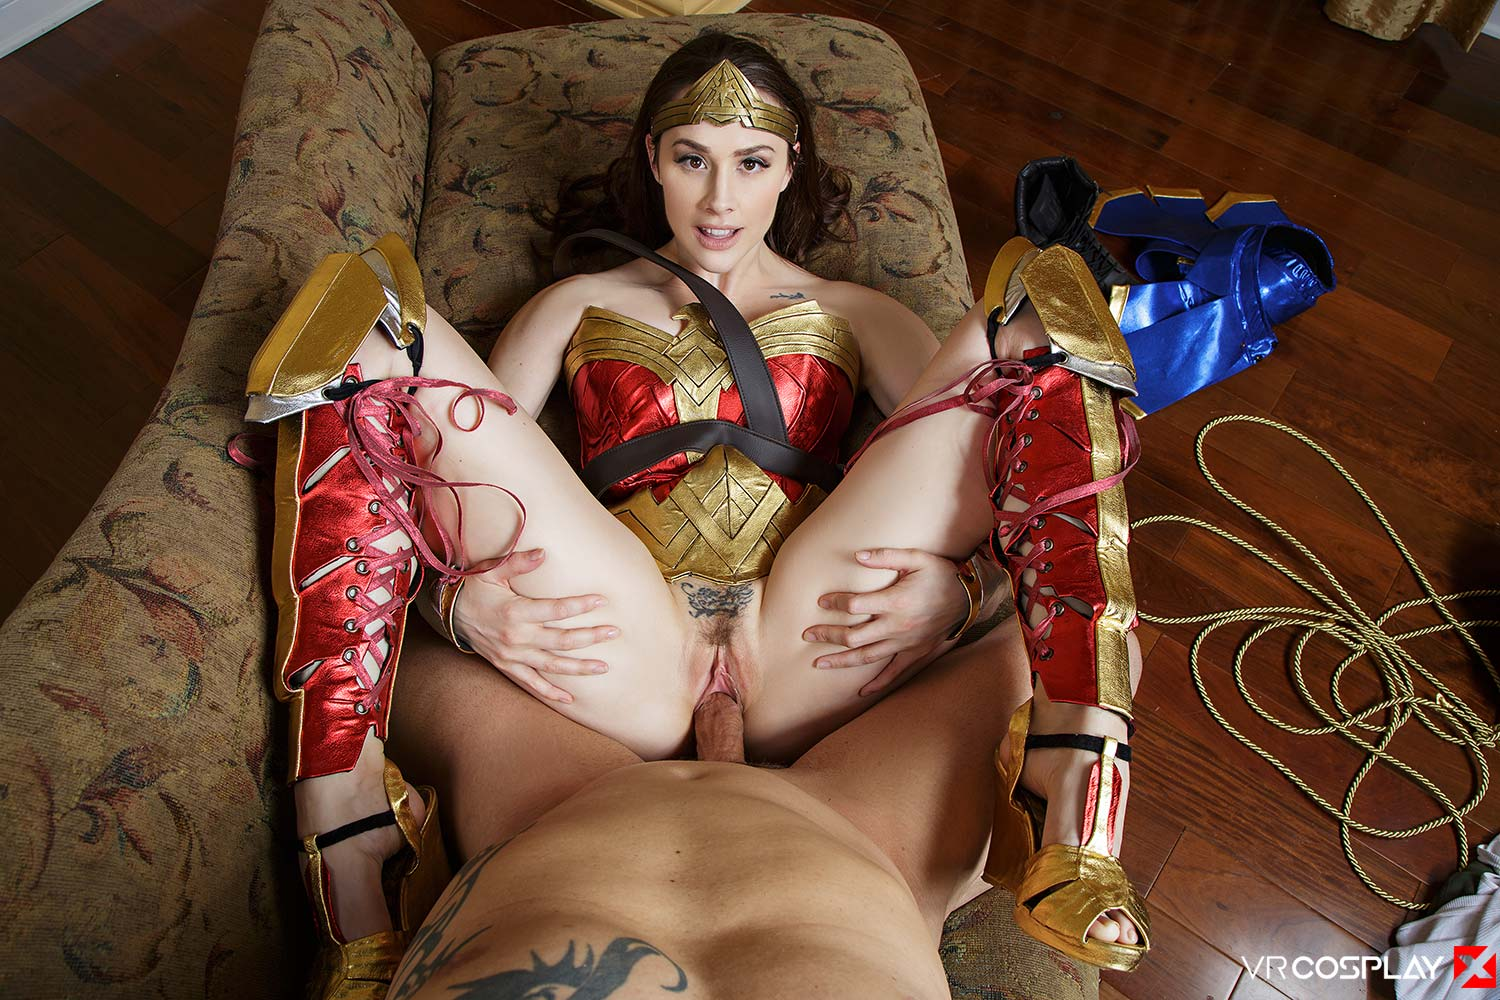 Has the wonder woman porn pipe Luna